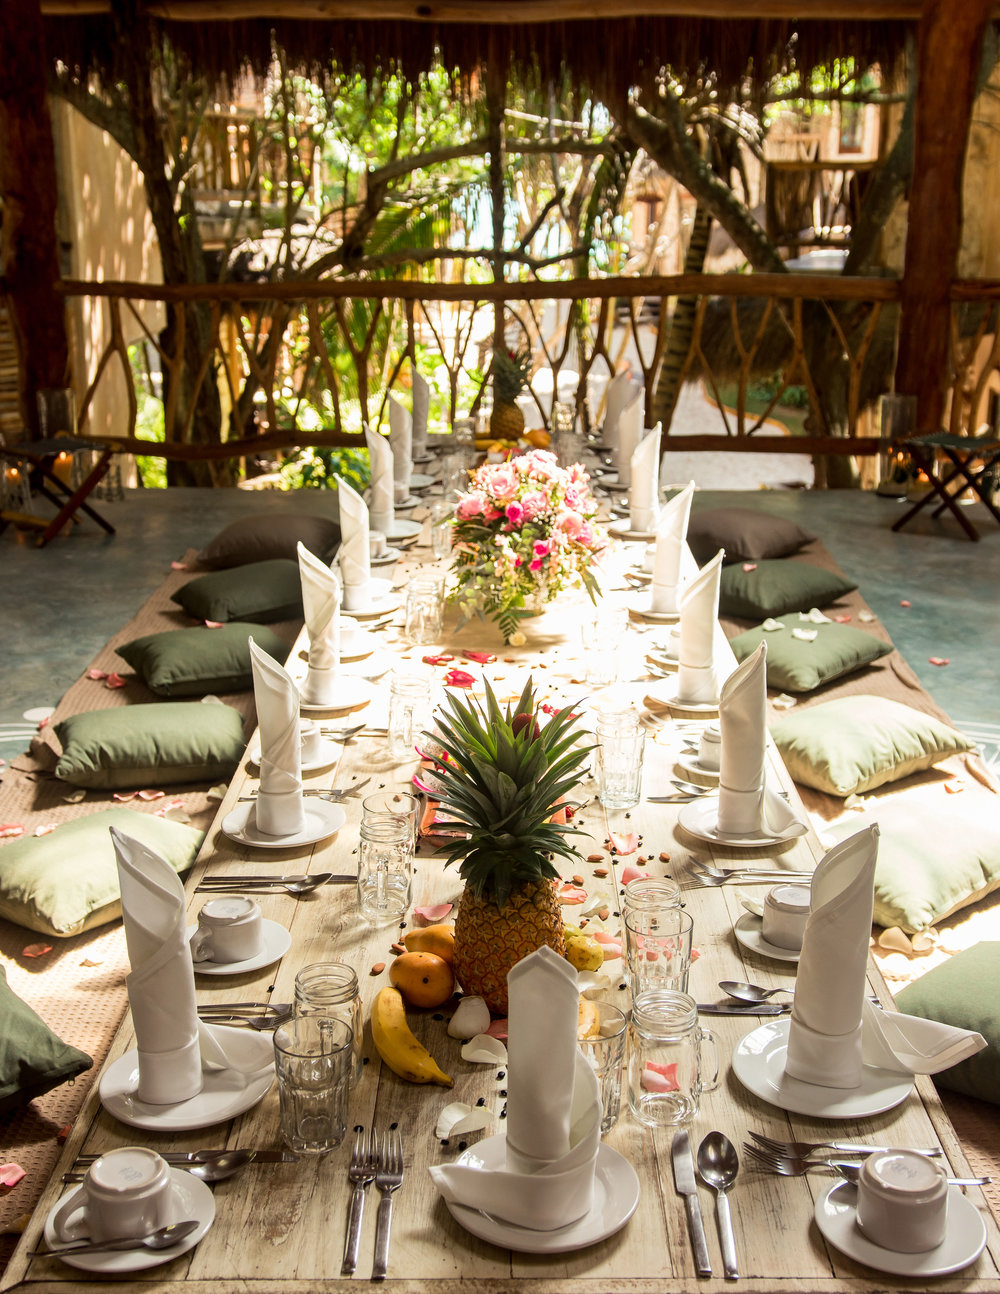 What's Included? - All transportation including airport transferBreakfast, Lunch & Dinner includedAll entrance tickets to landmarksExcursions and ToursLux Snorkeling TourVisit to the Tulum RuinsVisit to Tulum's Incredible CenotesYoga SessionsSunset at the Famous AzulikSwag Bag + More*flights not included*Add on: Massages & Photography Packages